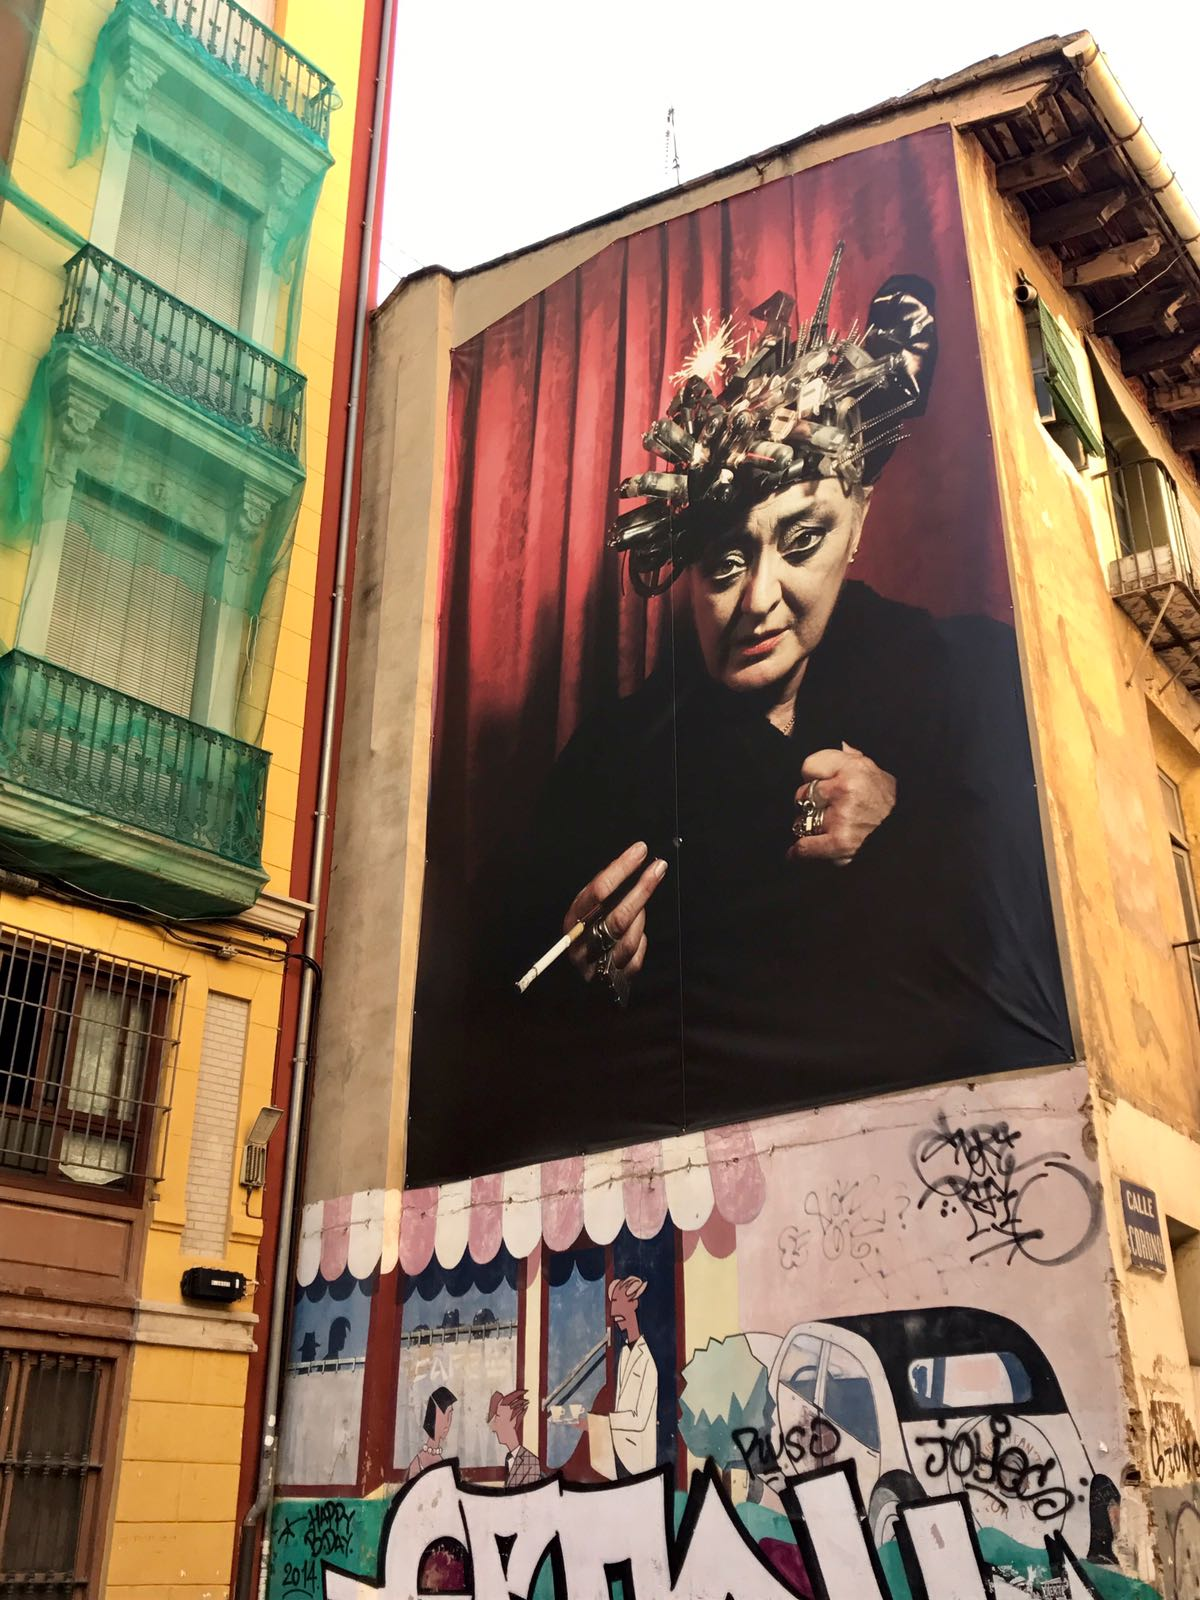 Photo poster of an older woman smoking a cigarette with what look like robotic hair curlers on her head